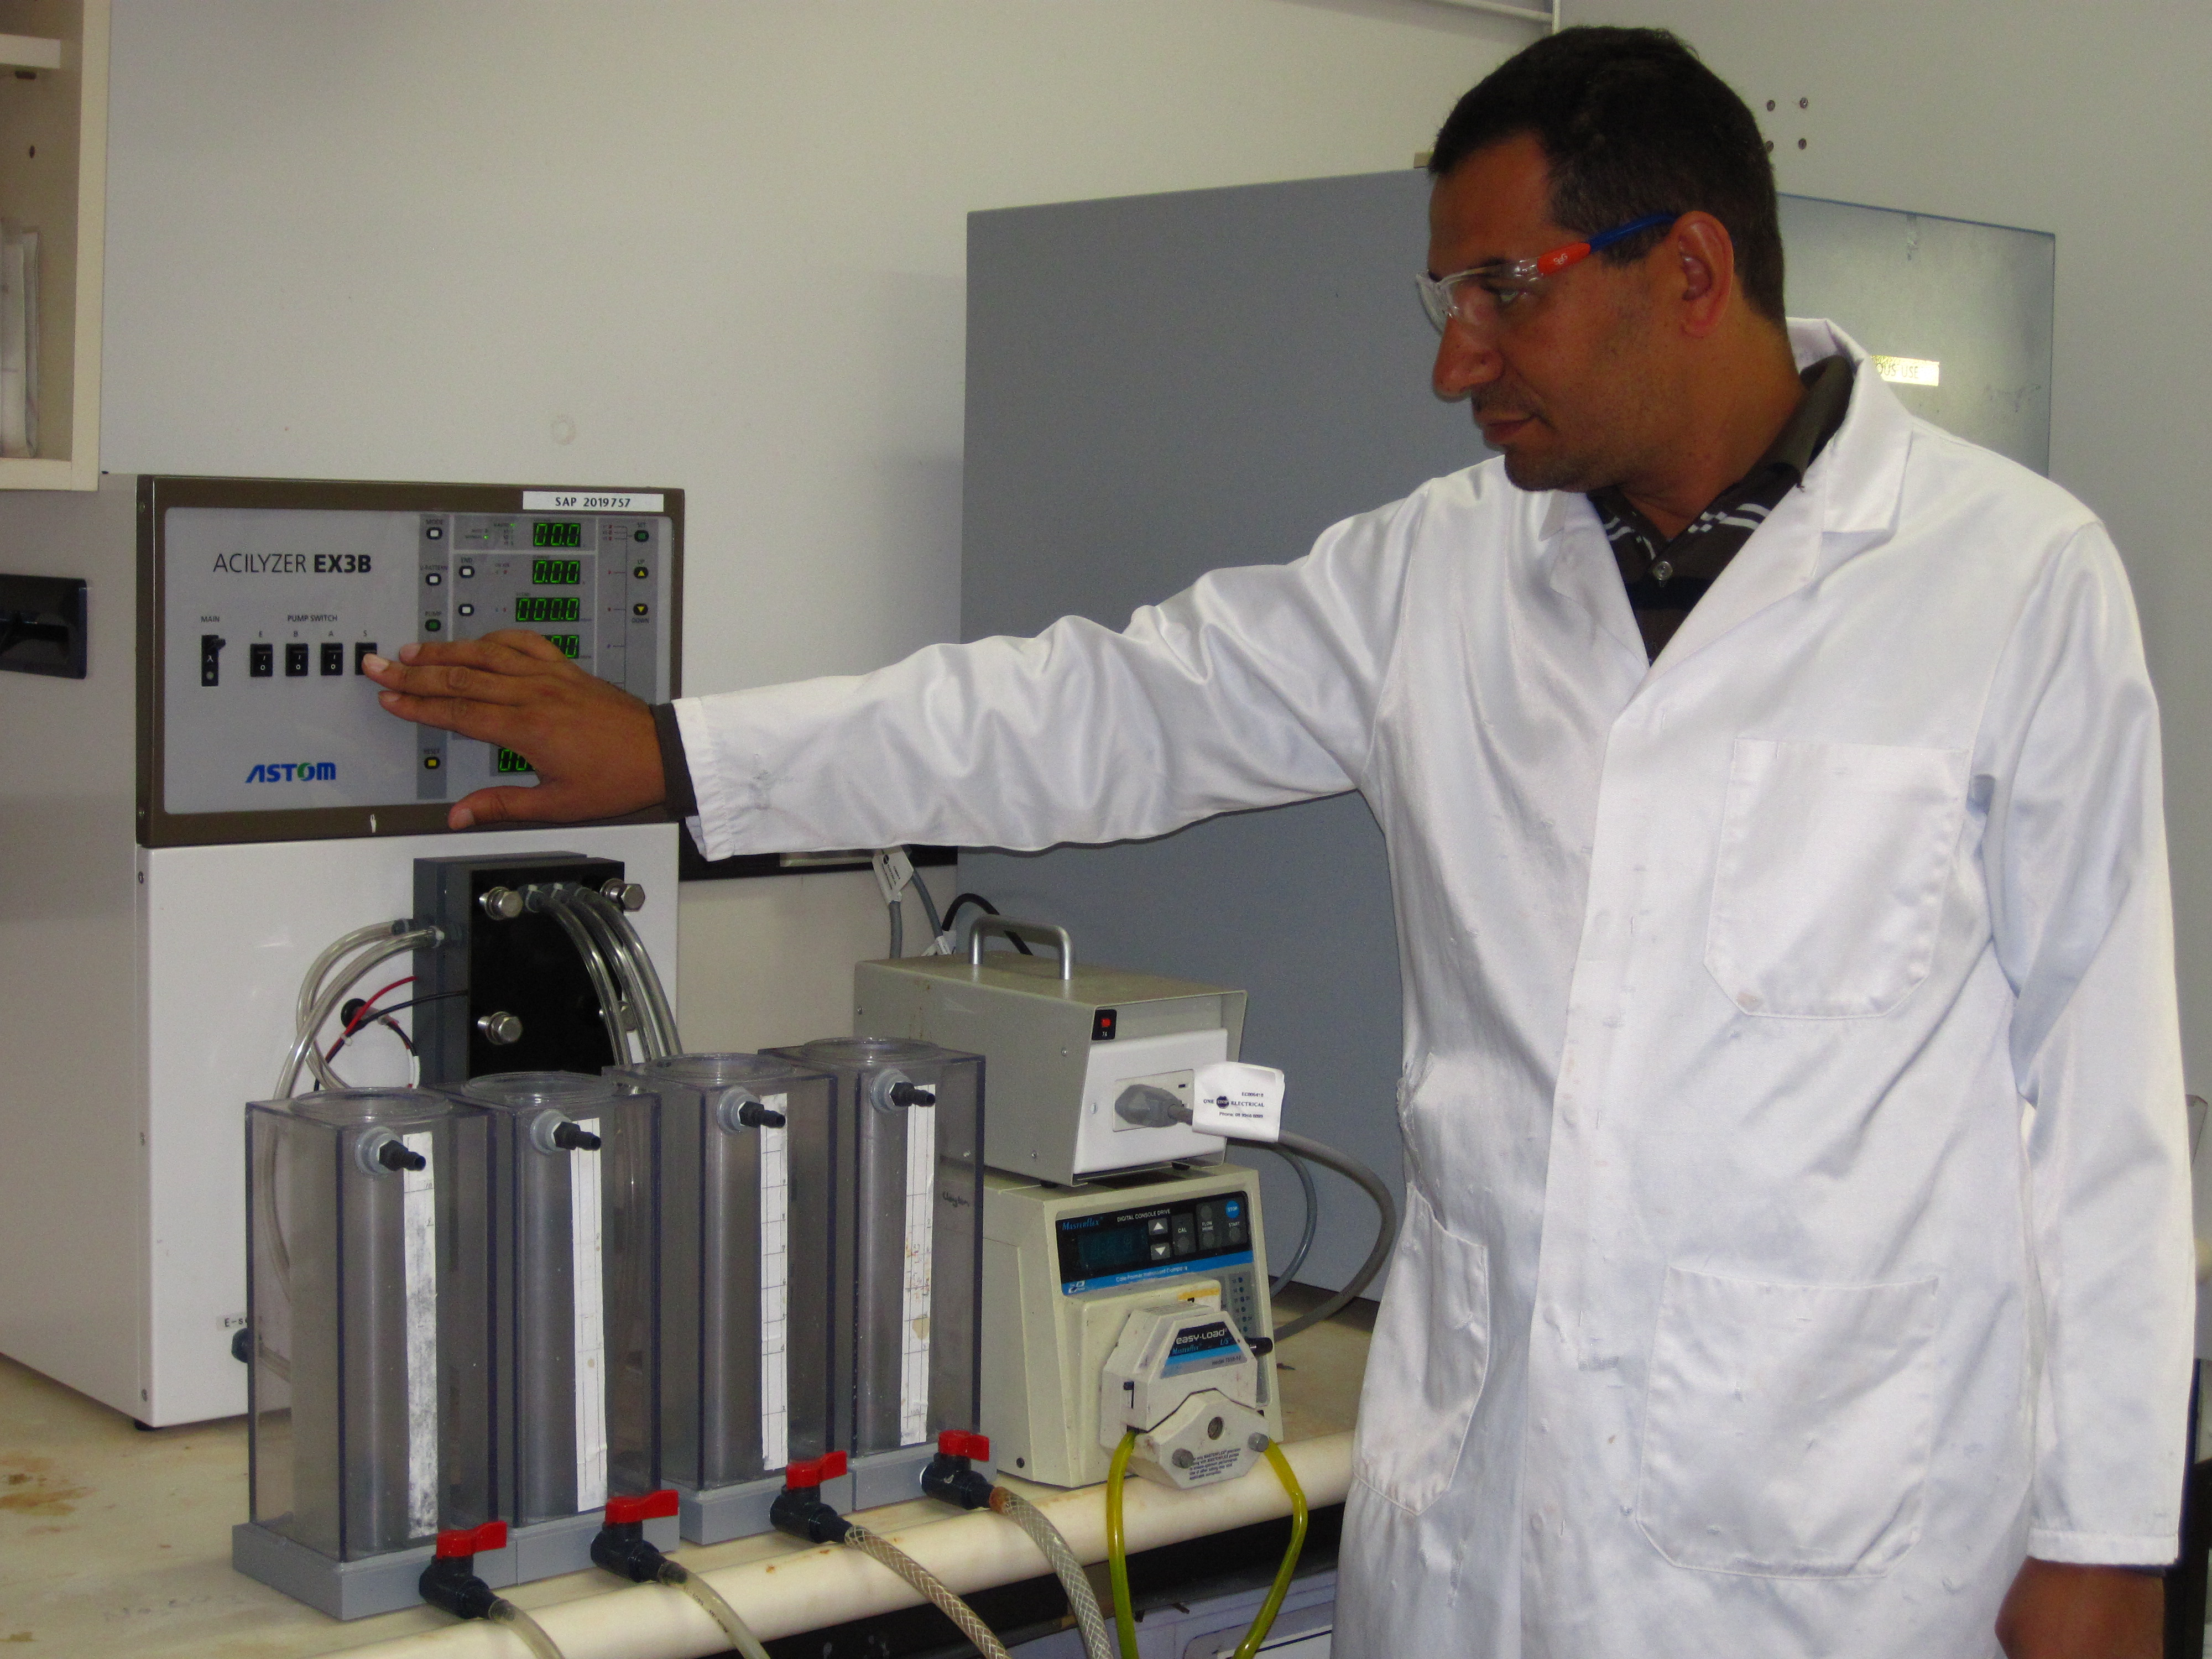 Scientist in white lab coat standing in front electrodialysis unit in CSIRO's Waterford laboratory.